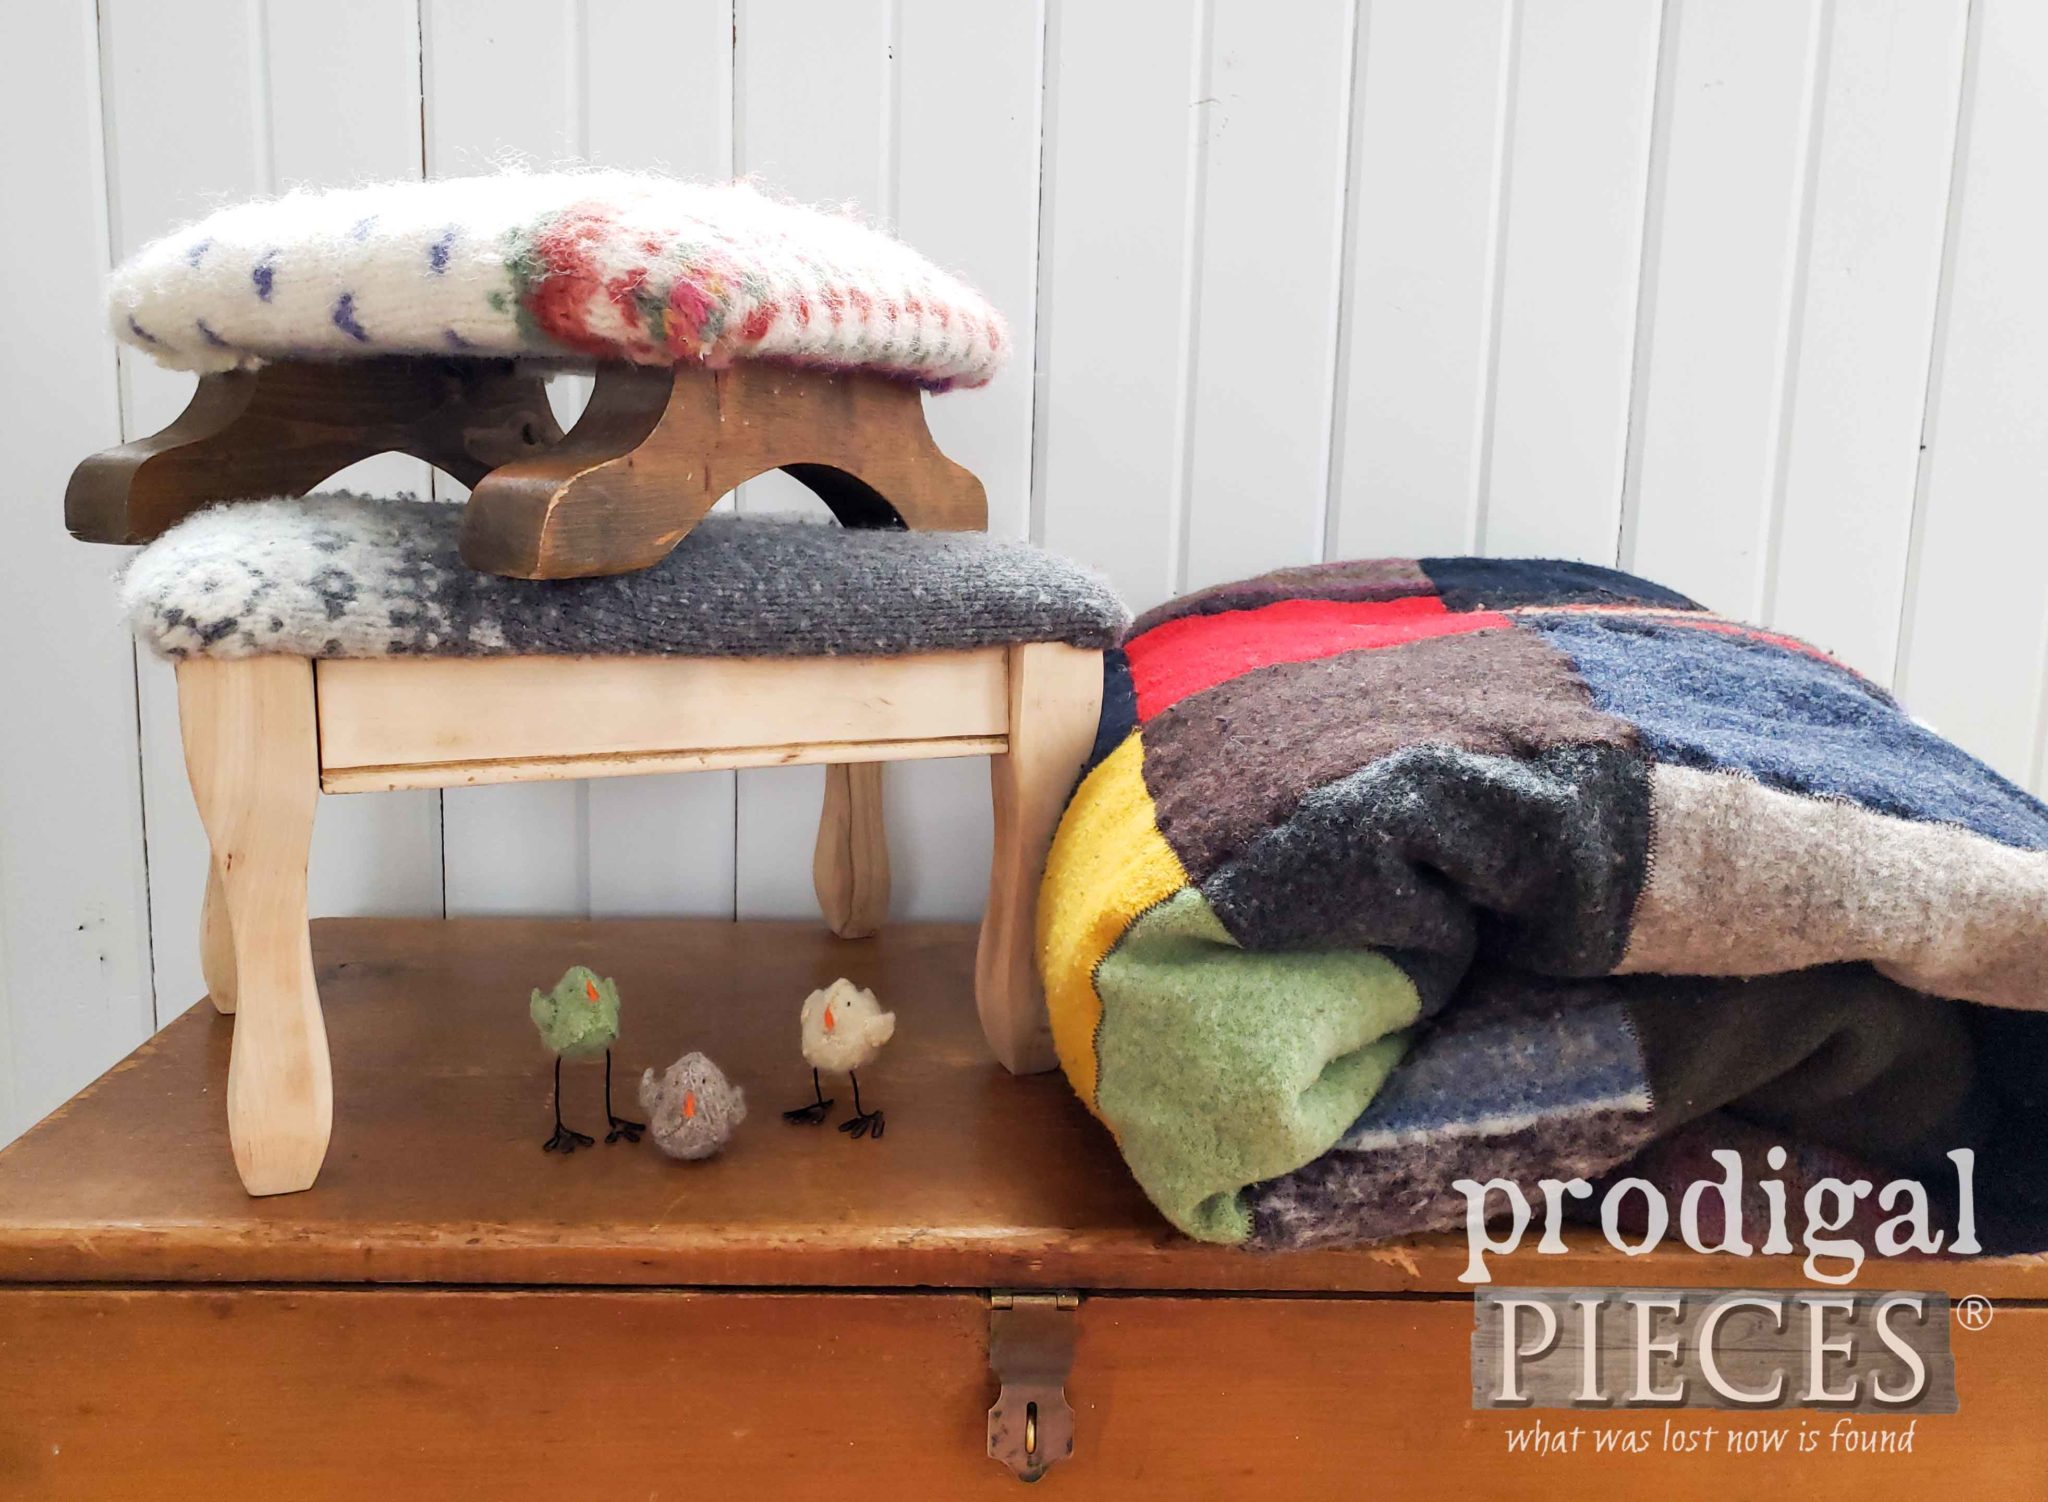 Handmade Felted Wool Sweater Projects ~ Toys, Quilts, Upholstery, and so much more | by Larissa of Prodigal Pieces | prodigalpieces.com #prodigalpieces #diy #handmade #home #homedecor #homedecorideas #toys